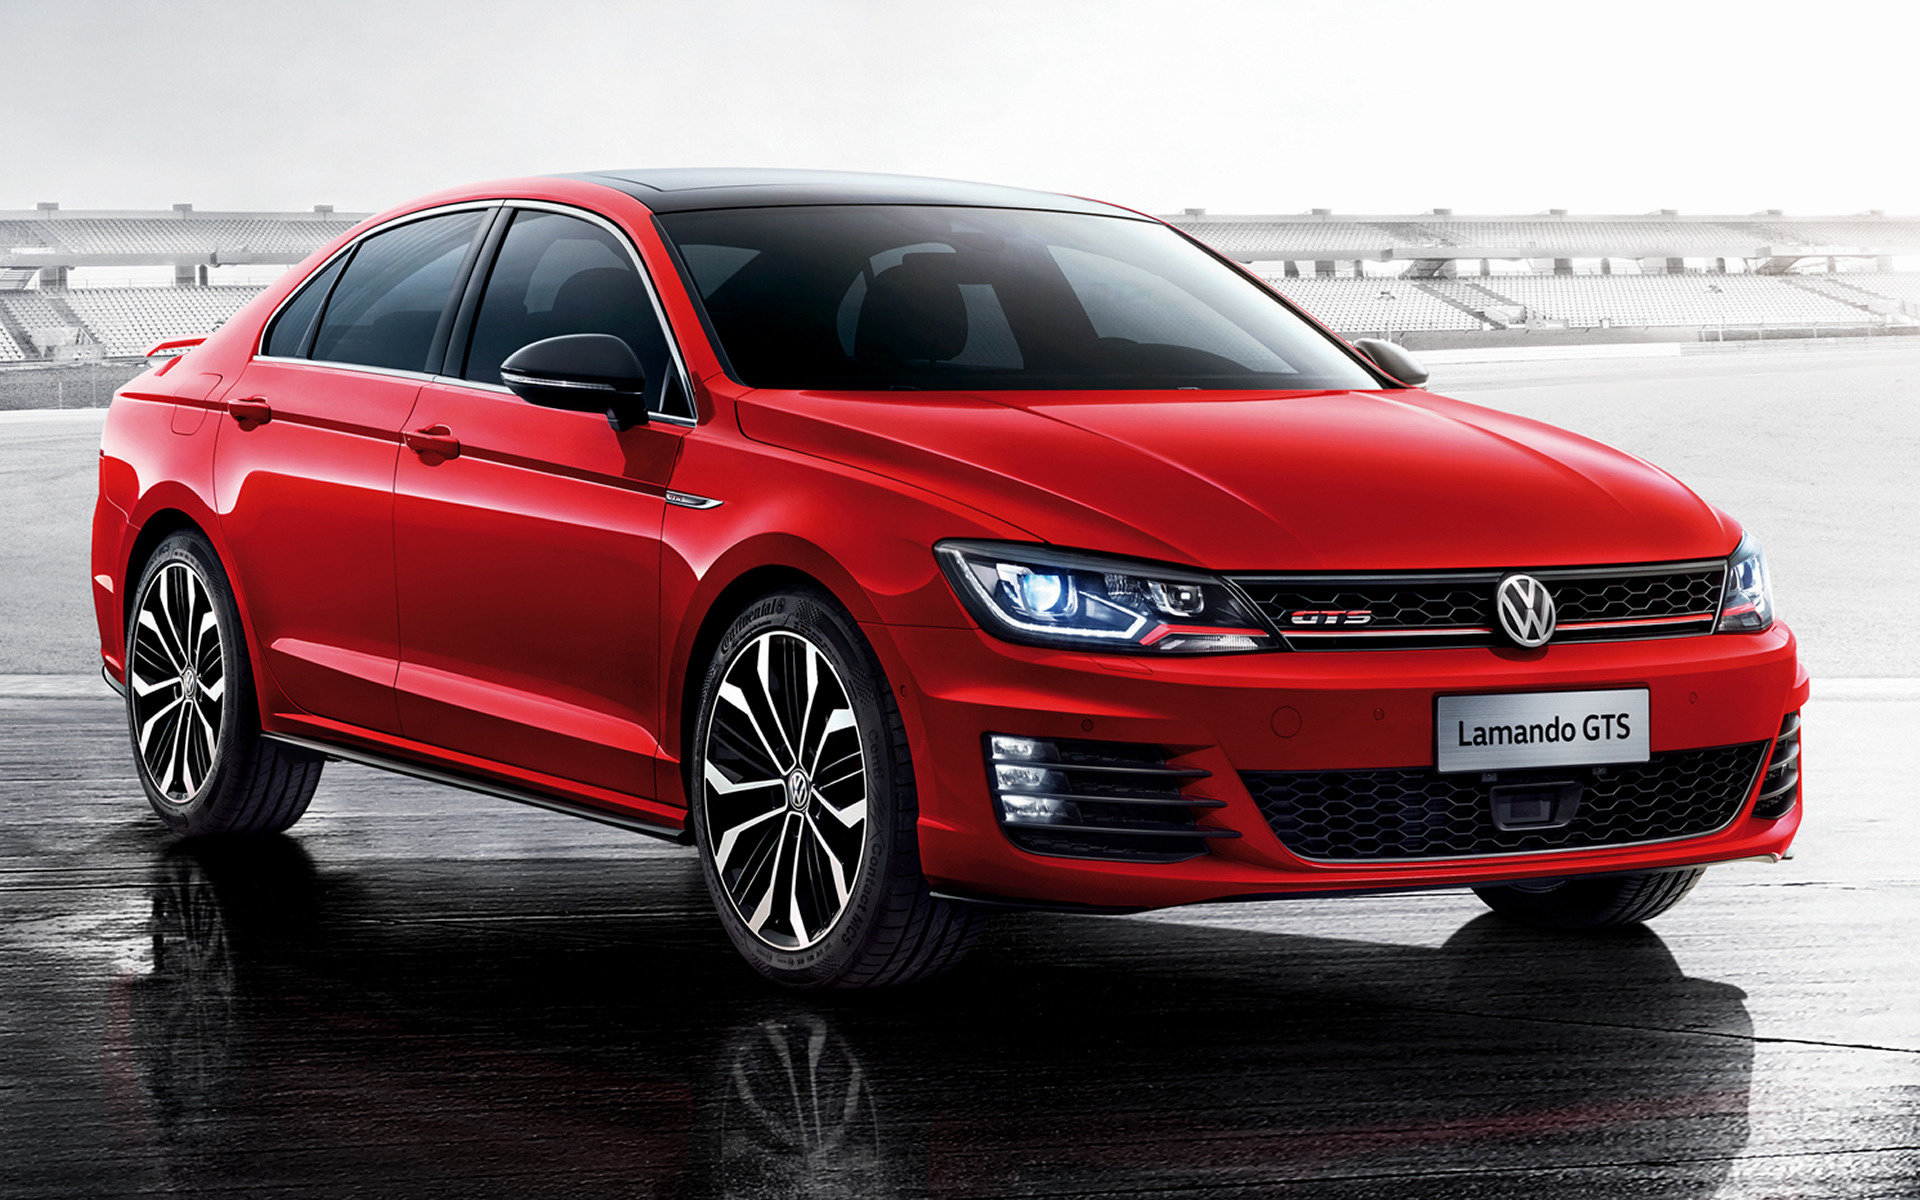 Volkswagen Lamando GTS 2016 Wallpapers And HD Images